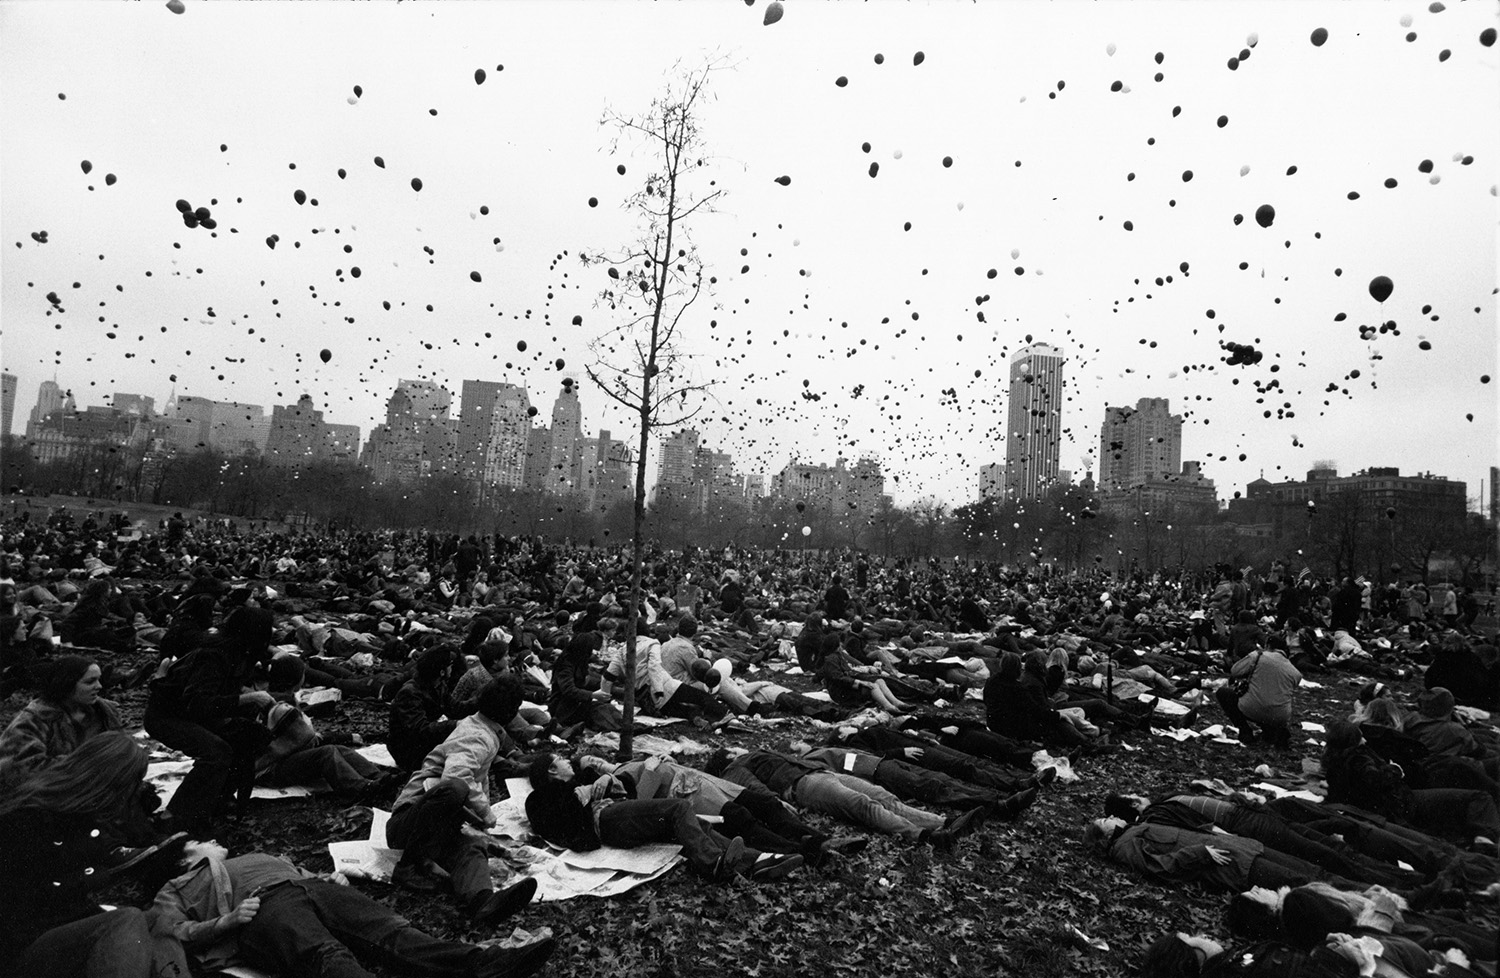 Peace Demonstration, Central Park by Garry Winogrand, 1970 © The Estate of Garry Winogrand